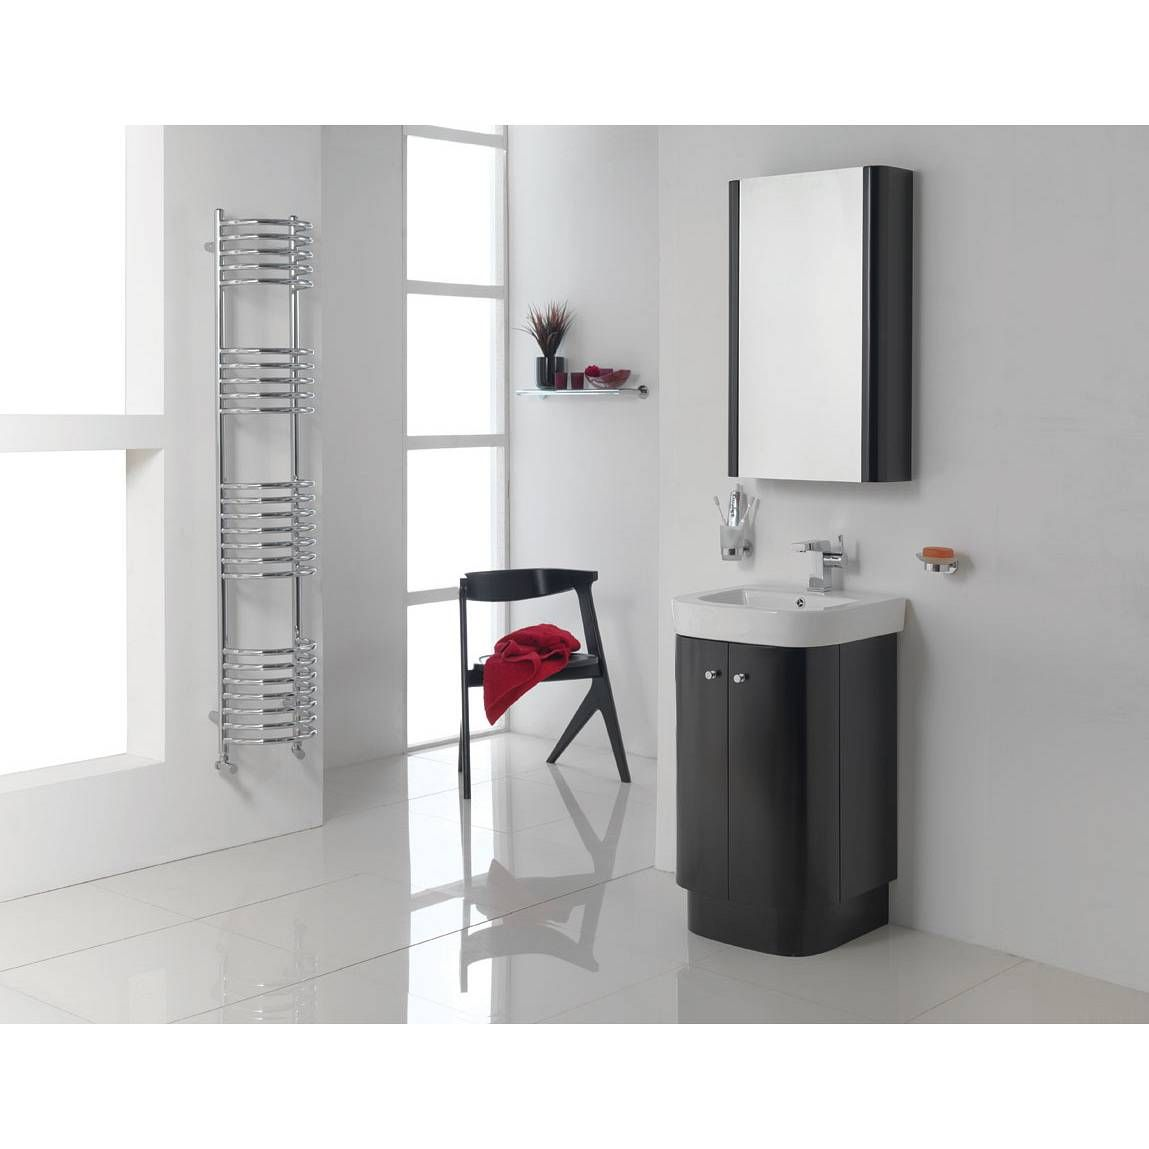 Divine Black Floor Mounted Unit Basin Mfi 229 Includes It Projects 450 Mm Out Which Probably Makes Too Need To Measure